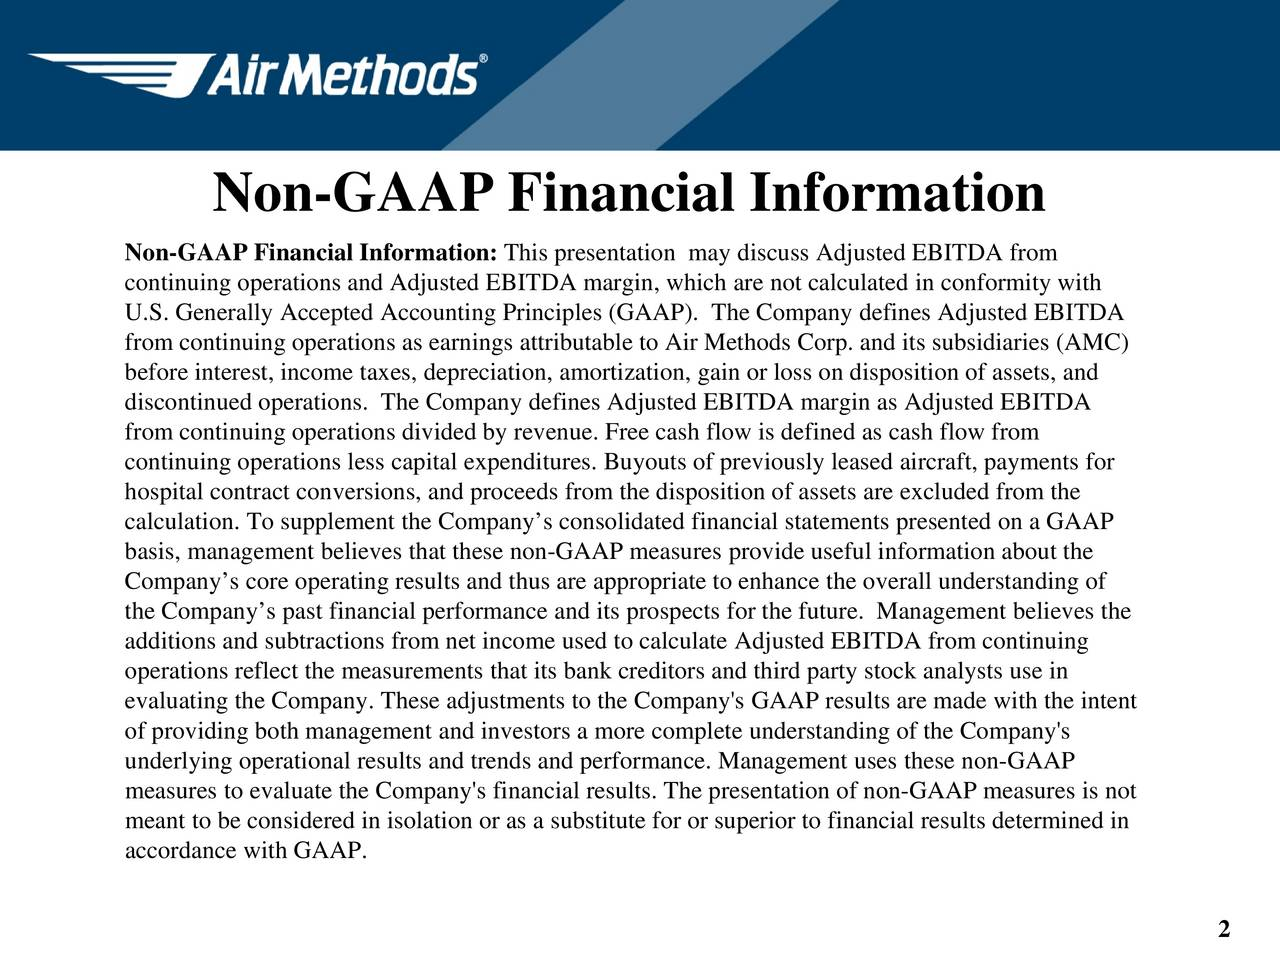 Non-GAAP Financial Information: This presentation may discuss Adjusted EBITDA from continuing operations and Adjusted EBITDA margin, which are not calculated in conformity with U.S. Generally Accepted Accounting Principles (GAAP). The Company defines Adjusted EBITDA from continuing operations as earnings attributable to Air Methods Corp. and its subsidiaries (AMC) before interest, income taxes, depreciation, amortization, gain or loss on disposition of assets, and discontinued operations. The Company defines Adjusted EBITDA margin as Adjusted EBITDA from continuing operations divided by revenue. Free cash flow is defined as cash flow from continuing operations less capital expenditures. Buyouts of previously leased aircraft, payments for hospital contract conversions, and proceeds from the disposition of assets are excluded from the calculation. To supplement the Companys consolidated financial statements presented on a GAAP basis, management believes that these non-GAAP measures provide useful information about the Companys core operating results and thus are appropriate to enhance the overall understanding of the Companys past financial performance and its prospects for the future. Management believes the additions and subtractions from net income used to calculate Adjusted EBITDA from continuing operations reflect the measurements that its bank creditors and third party stock analysts use in evaluating the Company. These adjustments to the Company's GAAP results are made with the intent of providing both management and investors a more complete understanding of the Company's underlying operational results and trends and performance. Management uses these non-GAAP measures to evaluate the Company's financial results. The presentation of non-GAAP measures is not meant to be considered in isolation or as a substitute for or superior to financial results determined in accordance with GAAP. 2